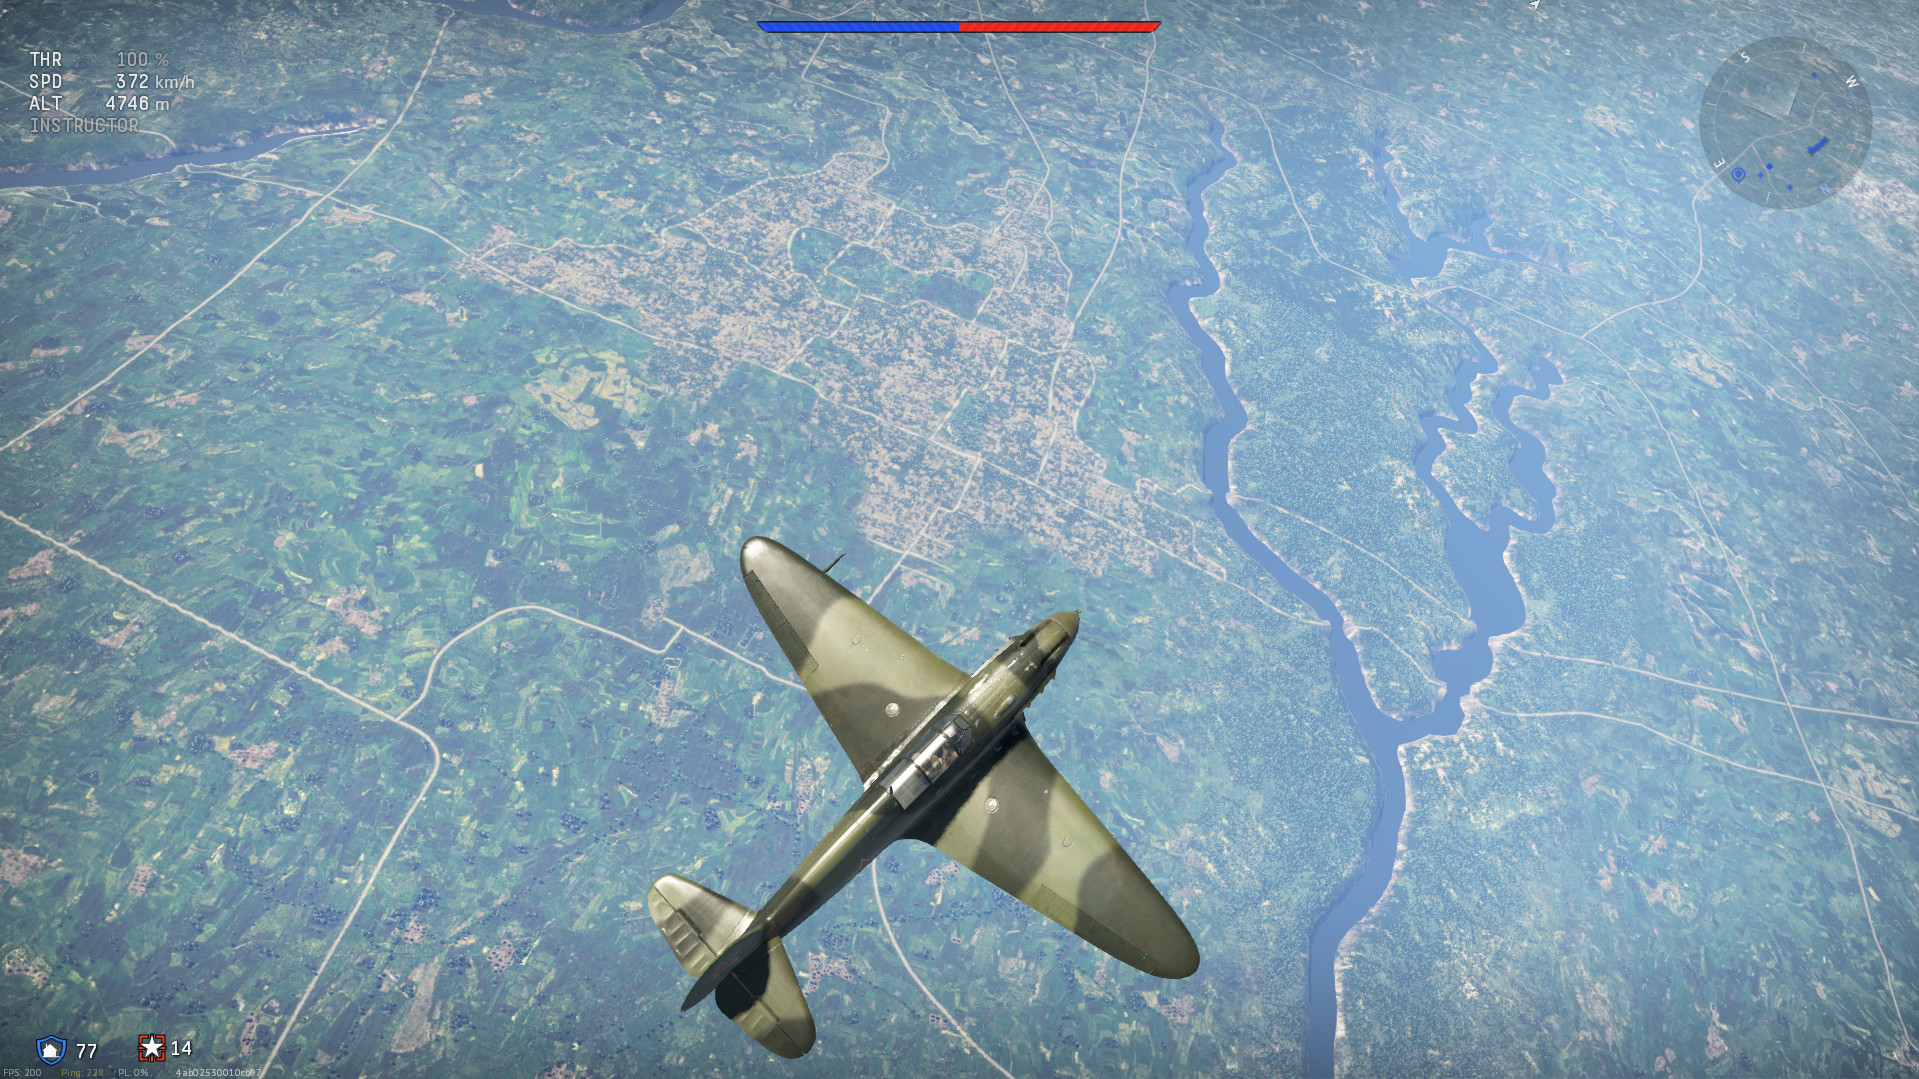 War Thunder currently has a Vulkan renderer under development that